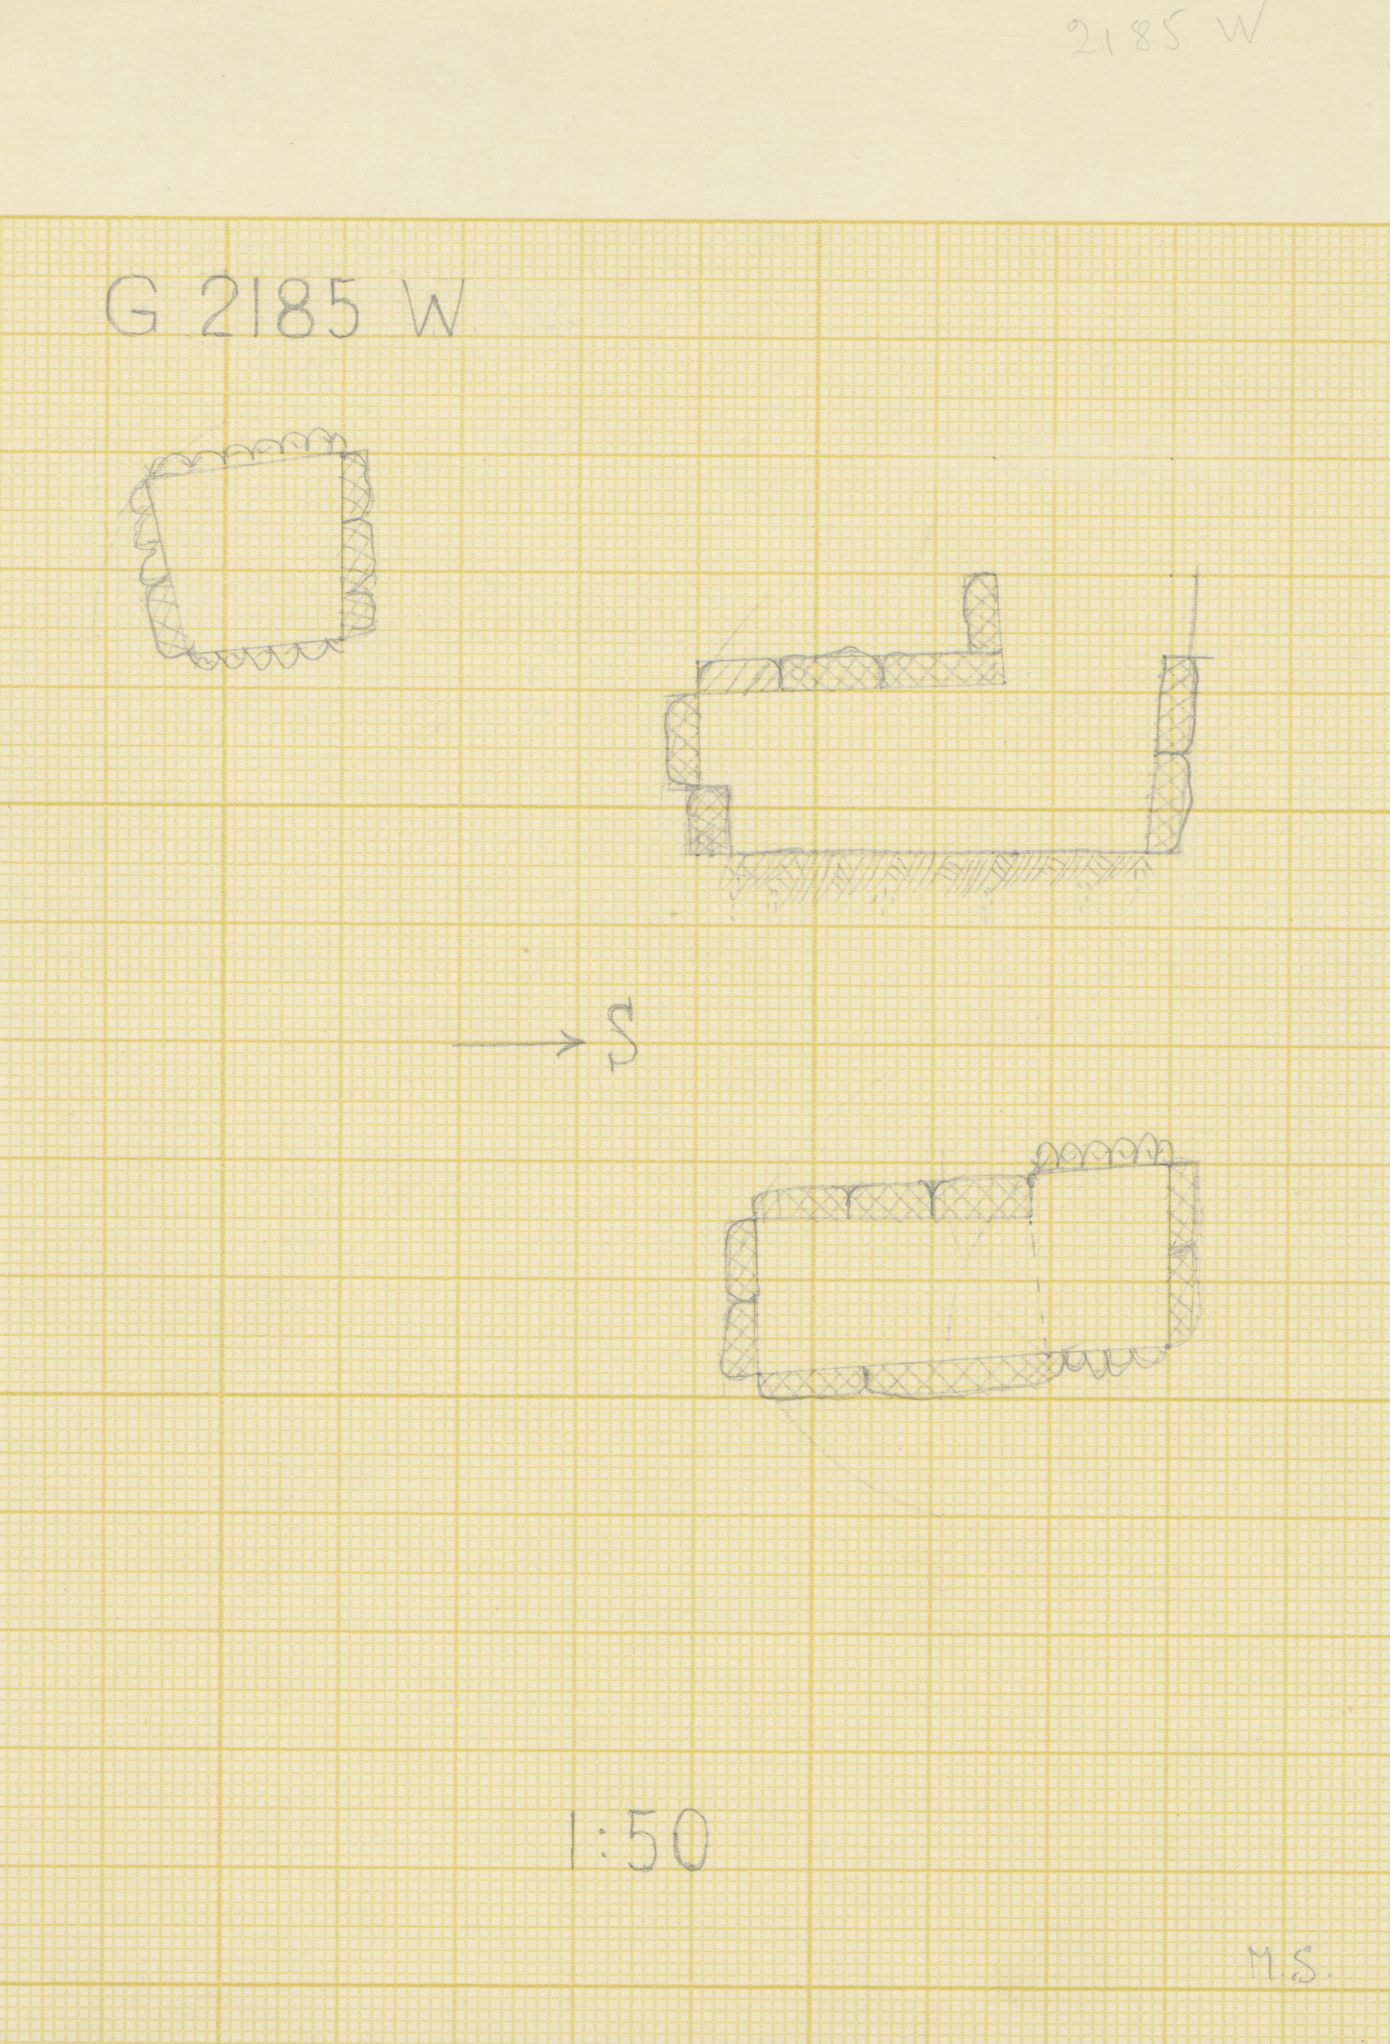 Maps and plans: G 2185, Shaft W